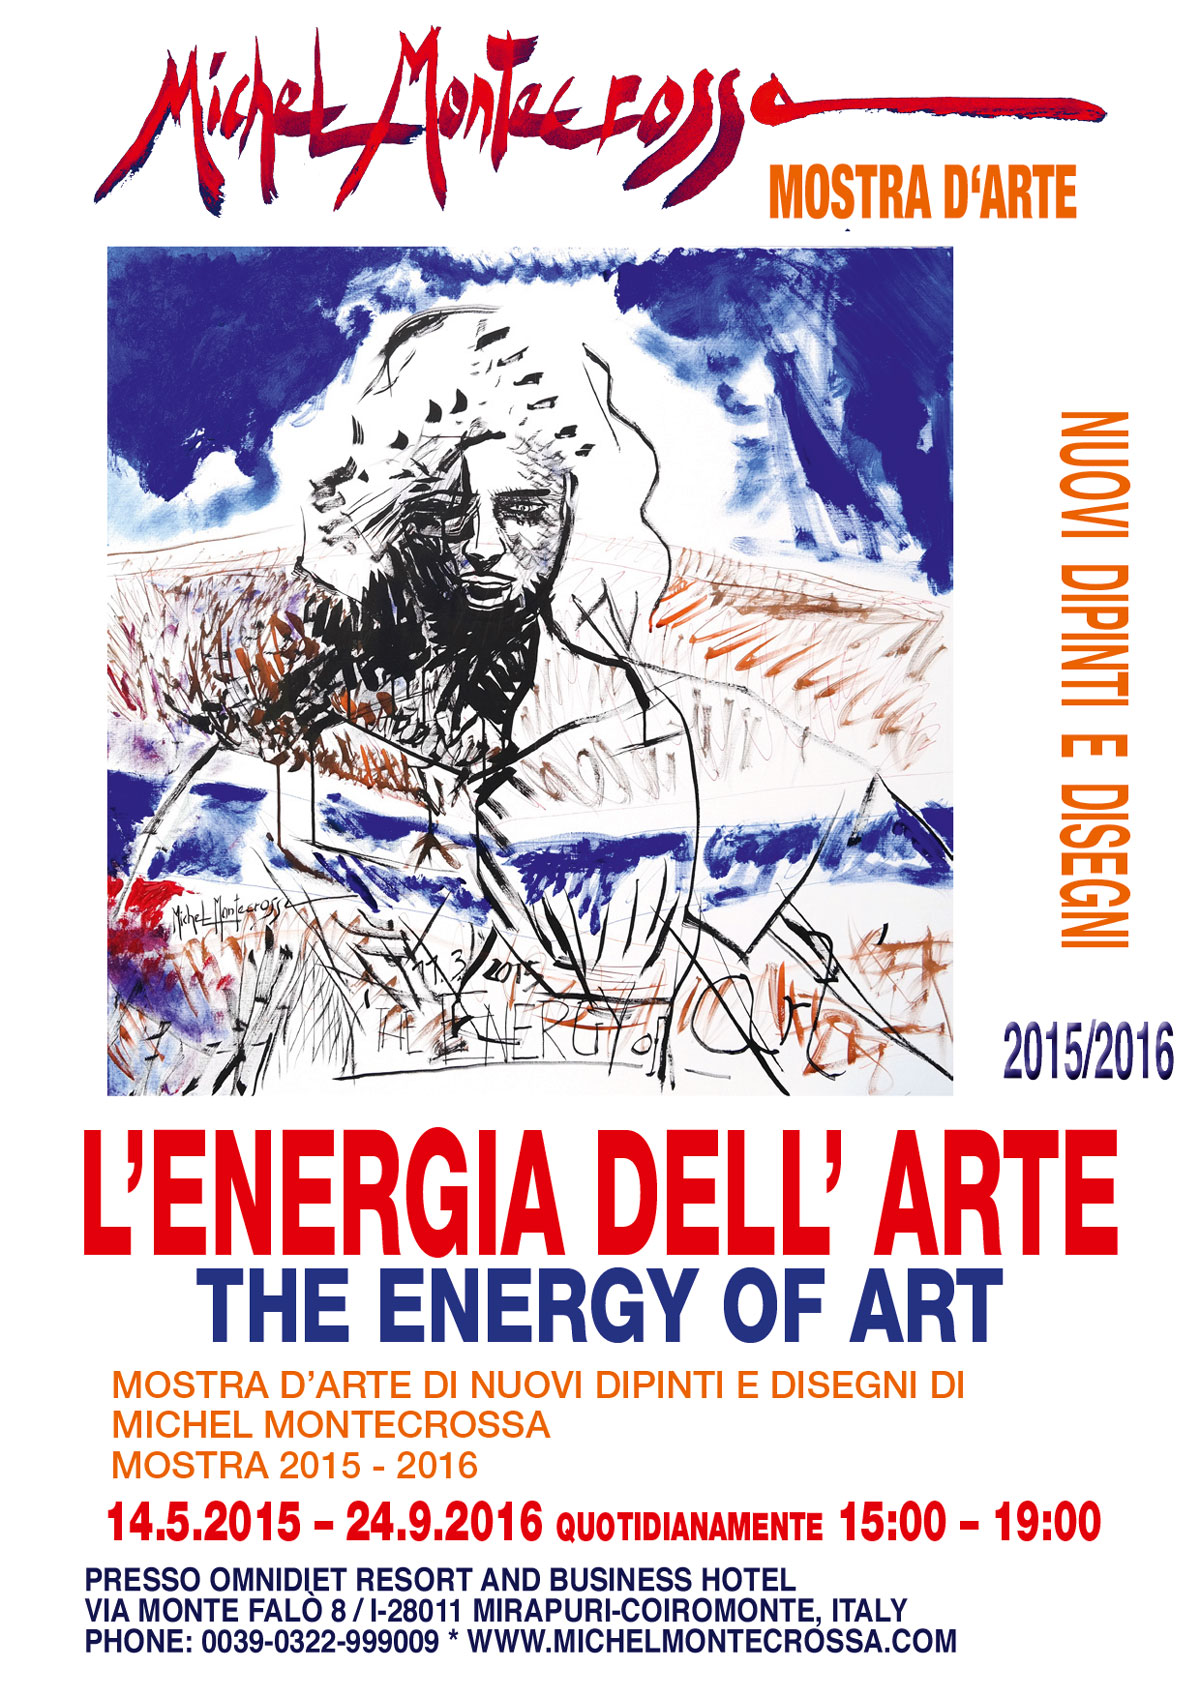 THE ENERGY OF ART Exhibition